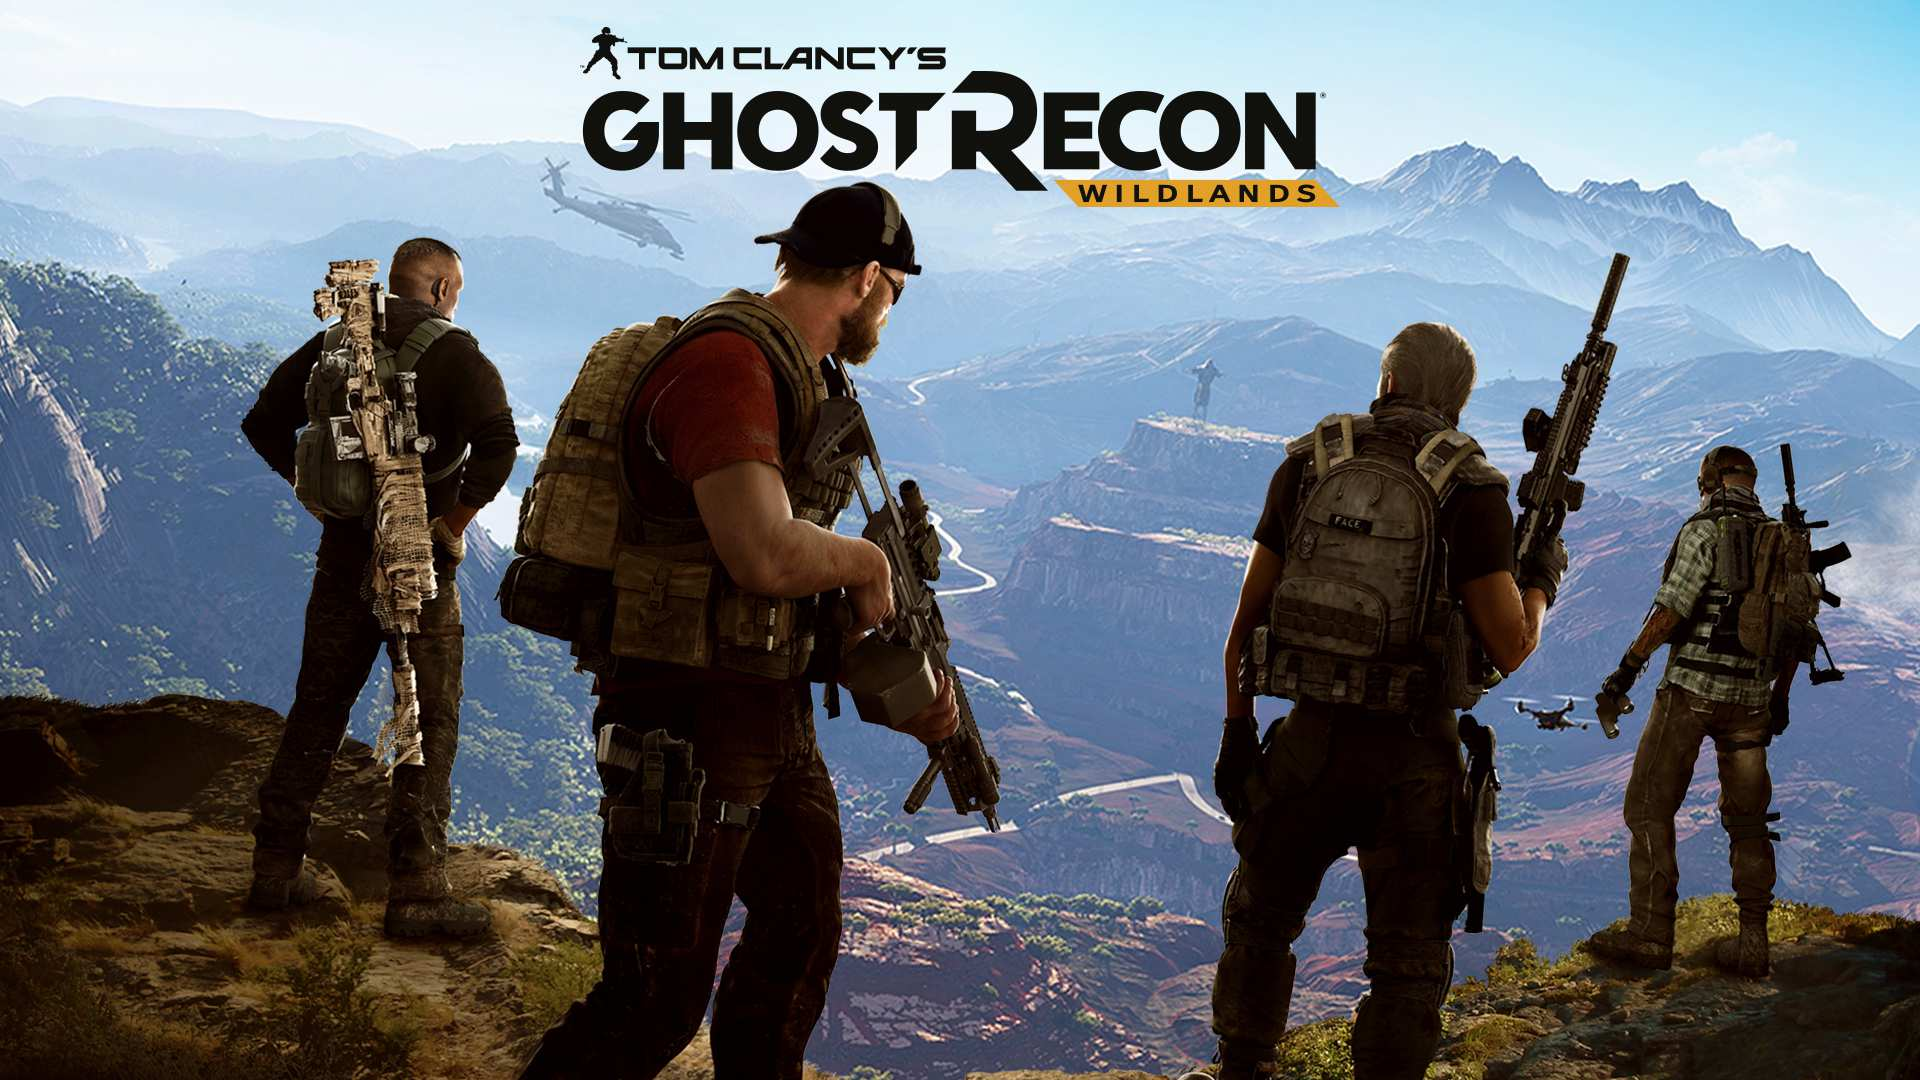 Tom clancy's ghost recon 1 pc review and full download | old pc.